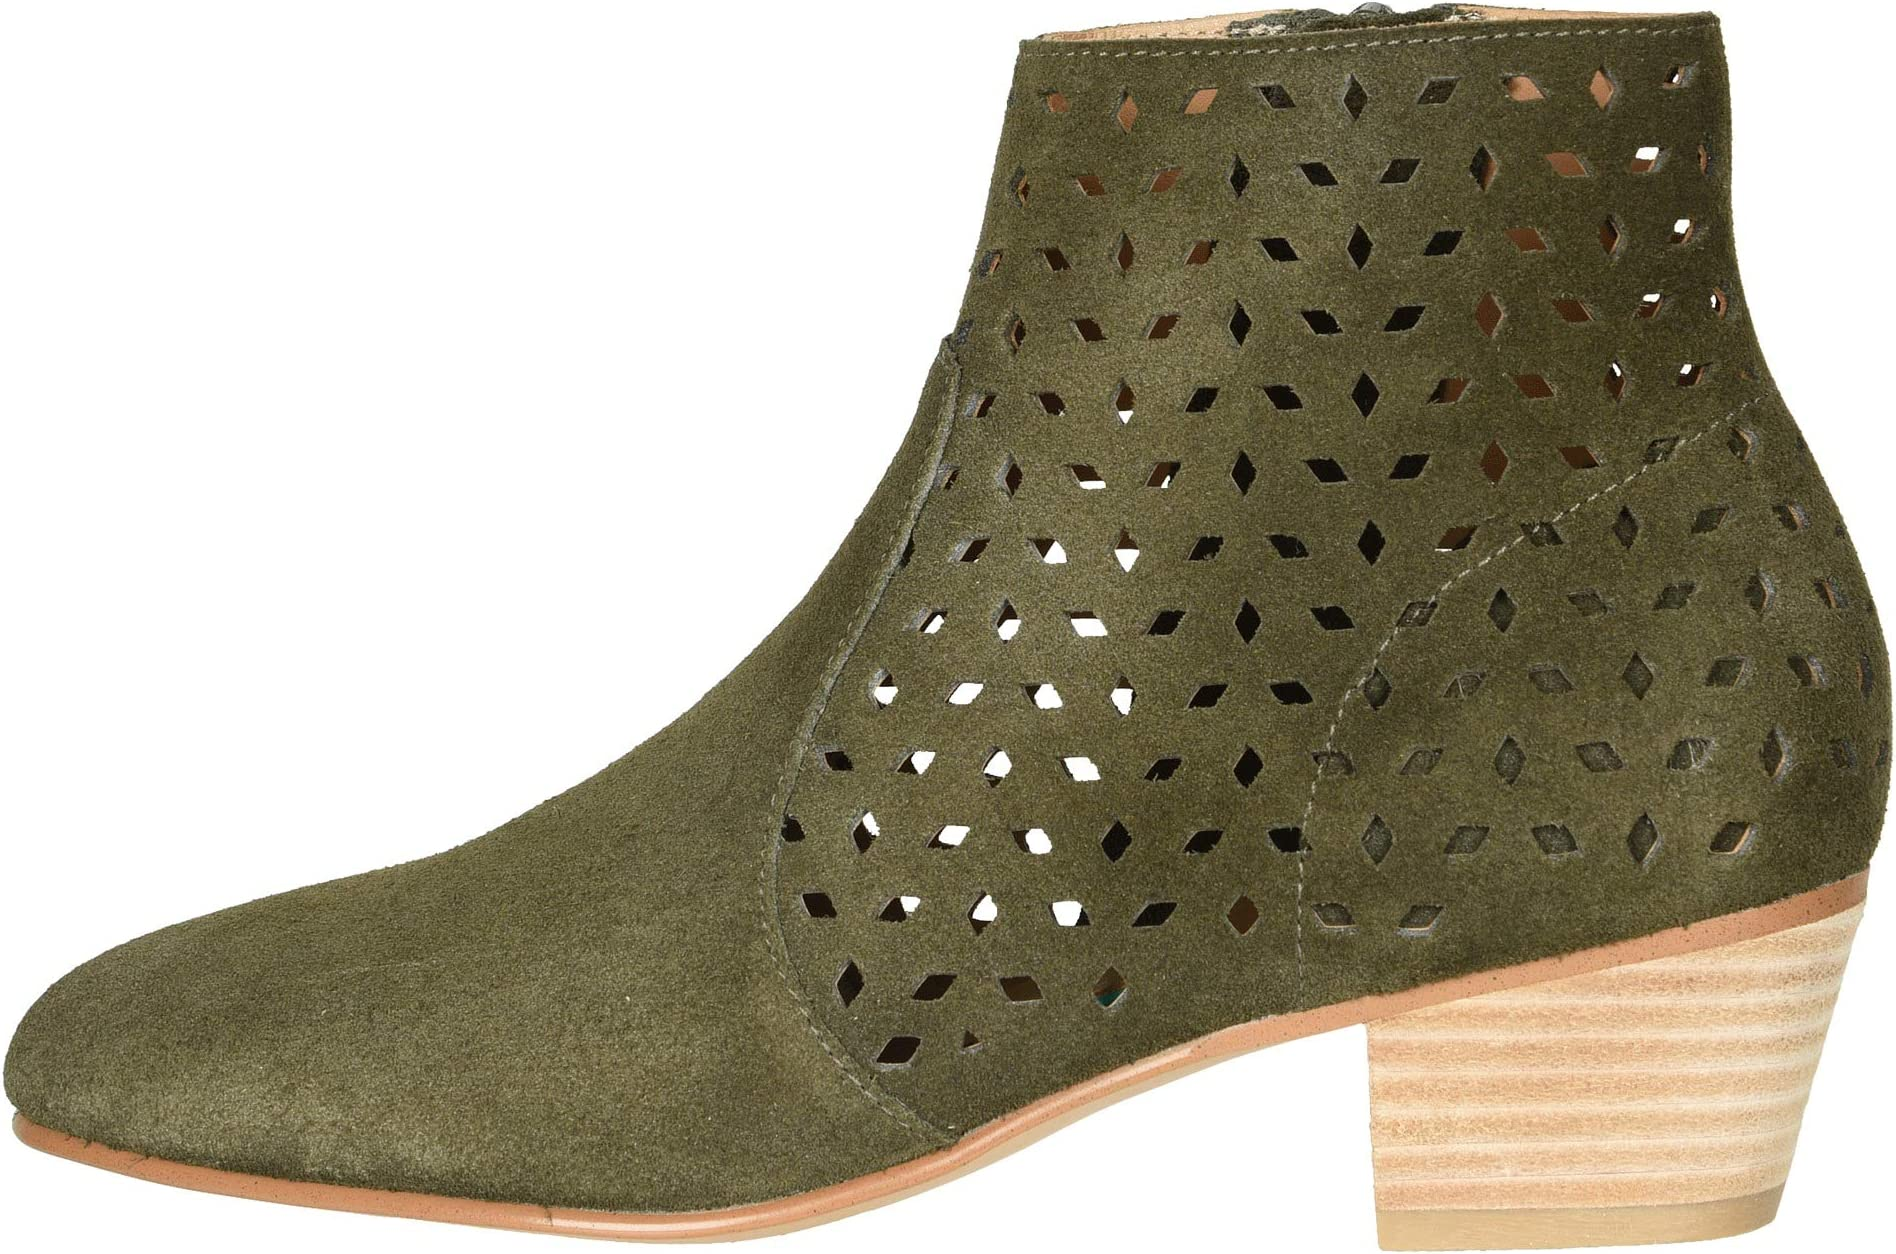 Soludos Lola Perforated Bootie | Women's shoes | 2020 Newest